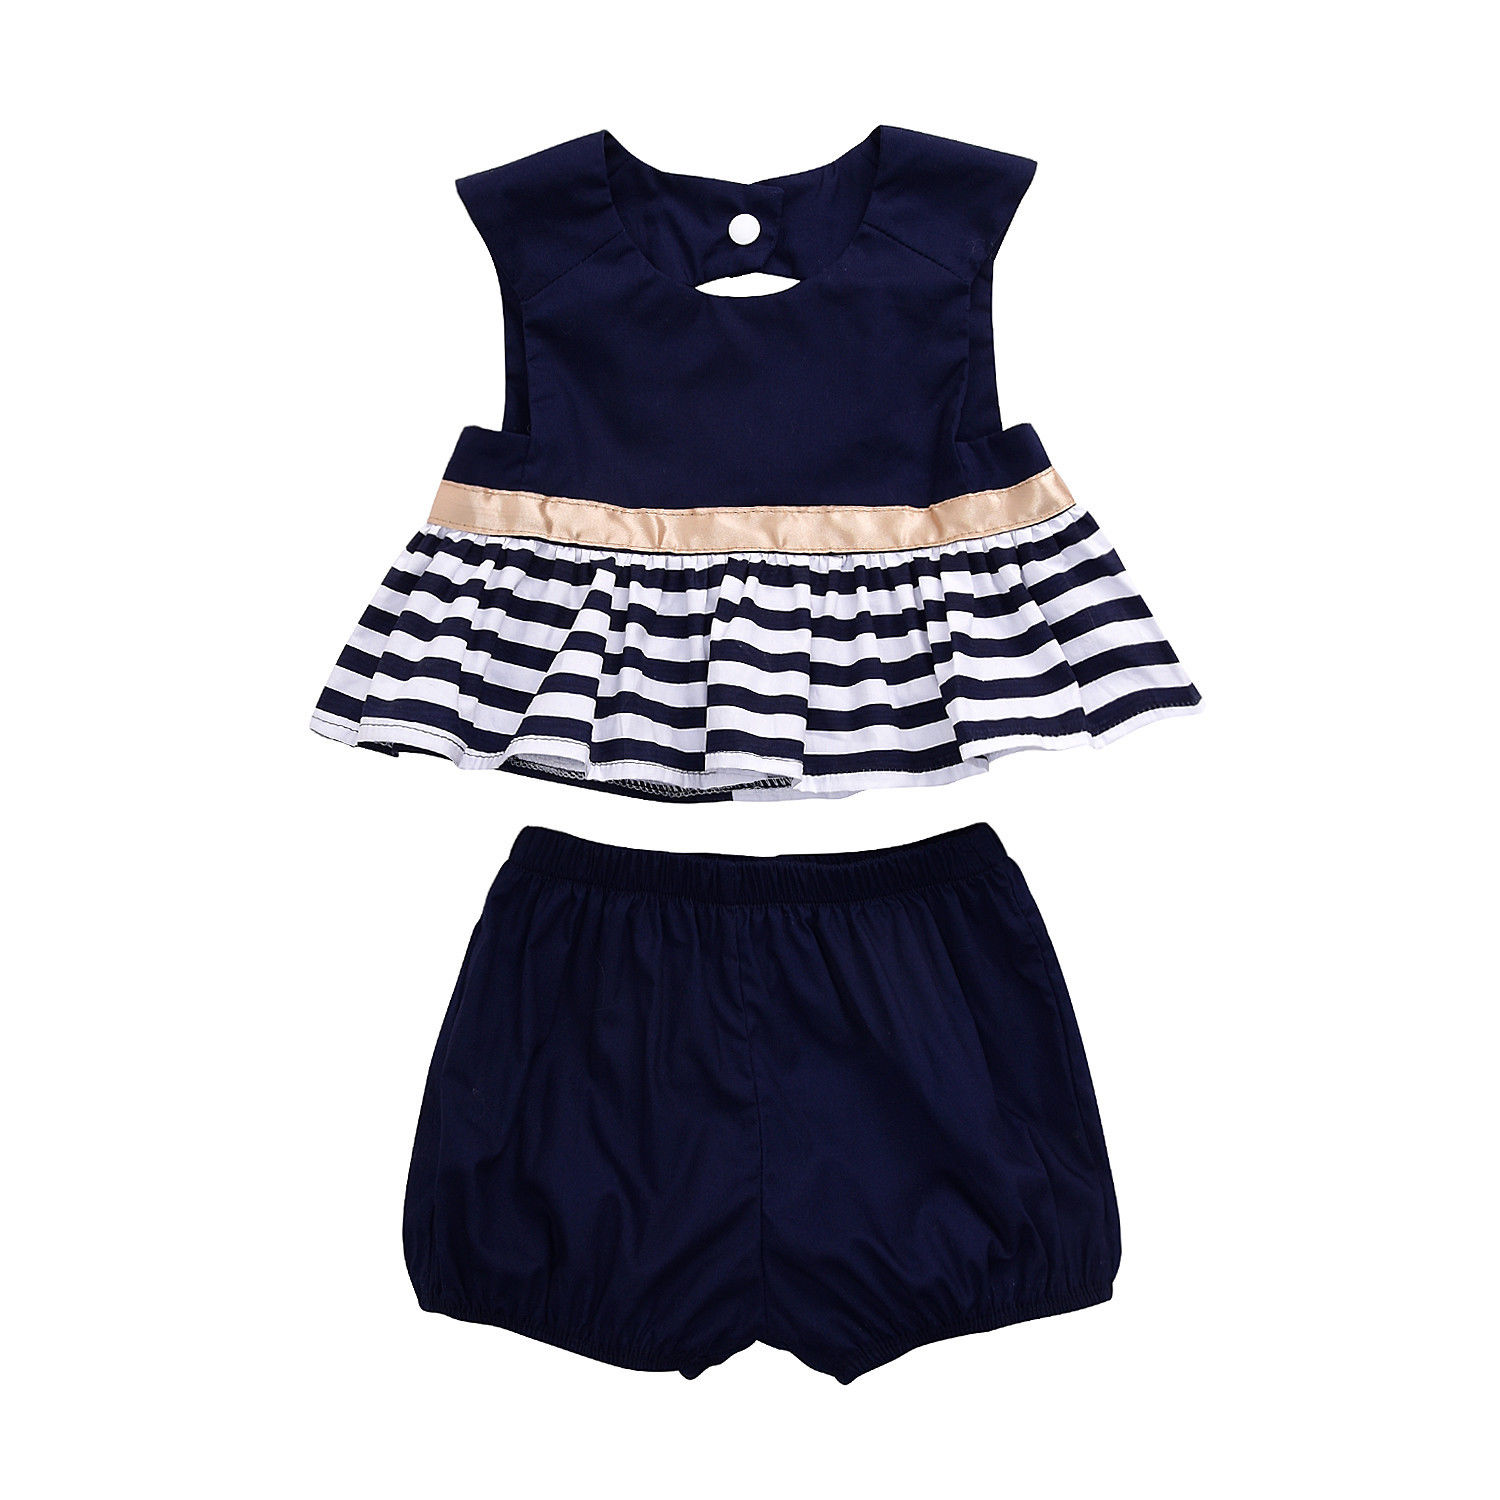 2pcs Sets Newborn Kid Baby Girl Clothes Striped T-shirts Dress+Bottoms Summer Fashion Toddler girls Cotton SunsuitsClothes 0-18